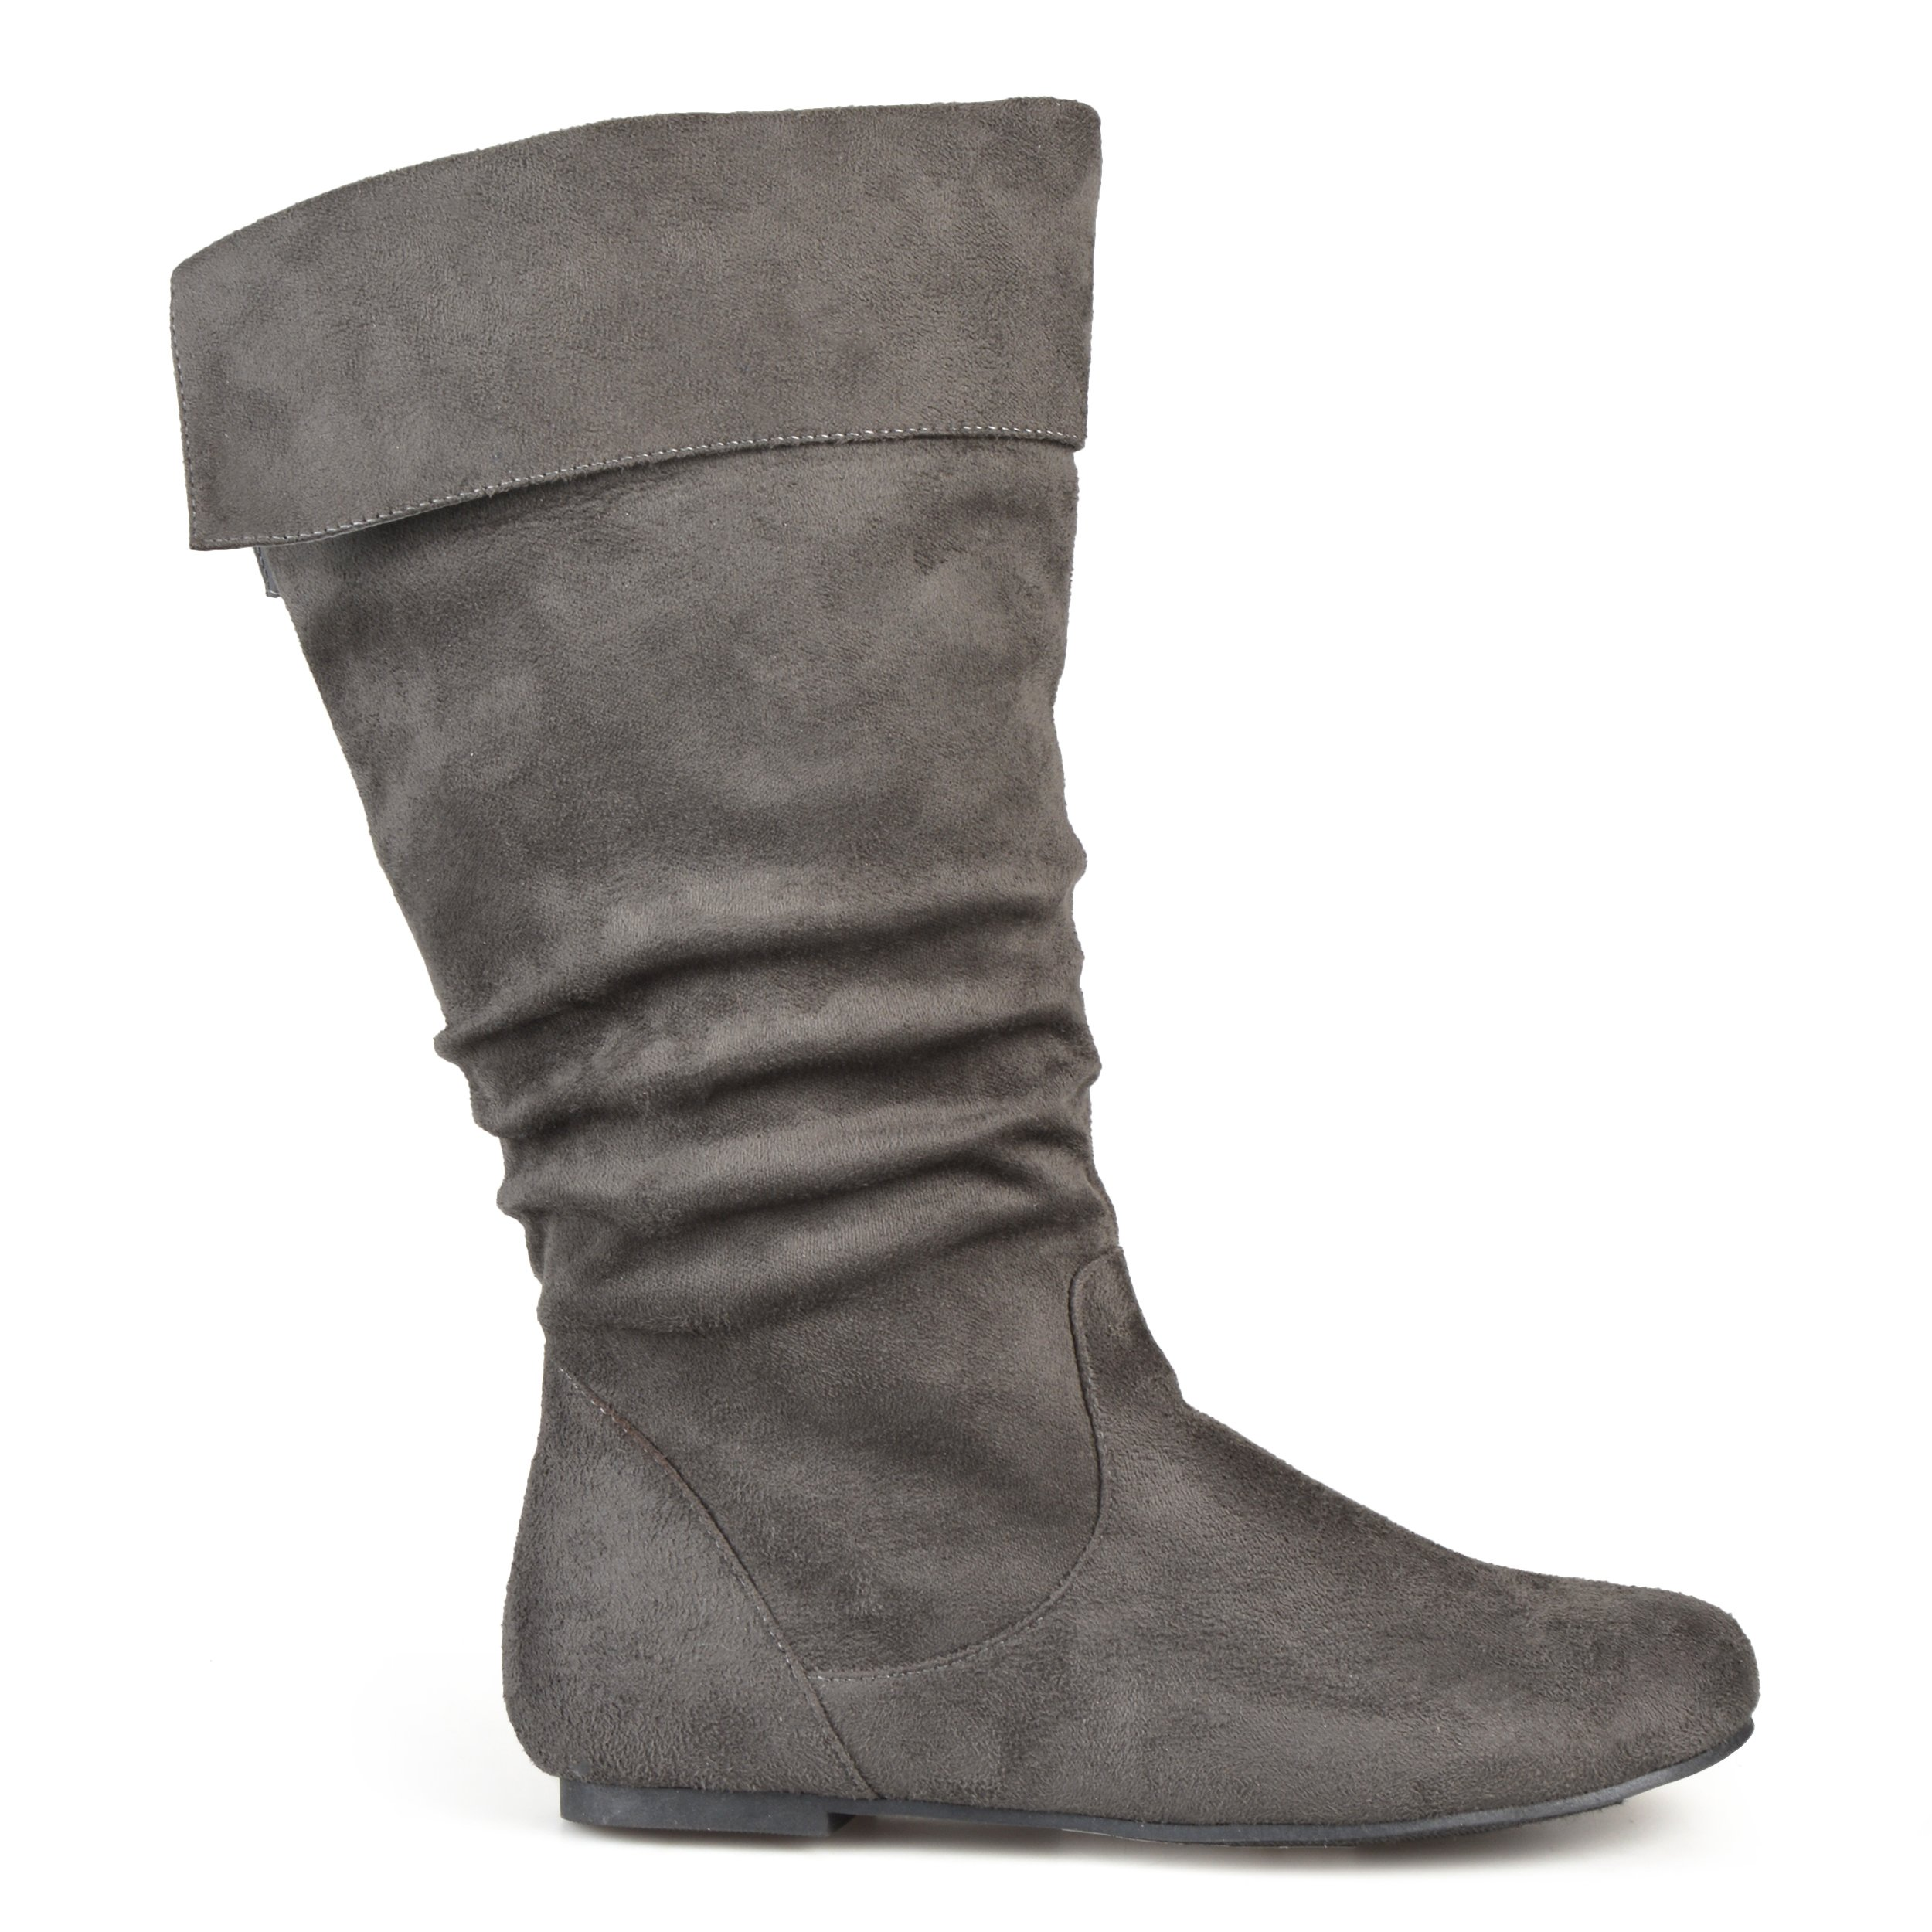 Brinley Co. Womens Regular Size and Wide-Calf Microsuede Slouch Mid-Calf Boot Grey, 9 Wide Calf US